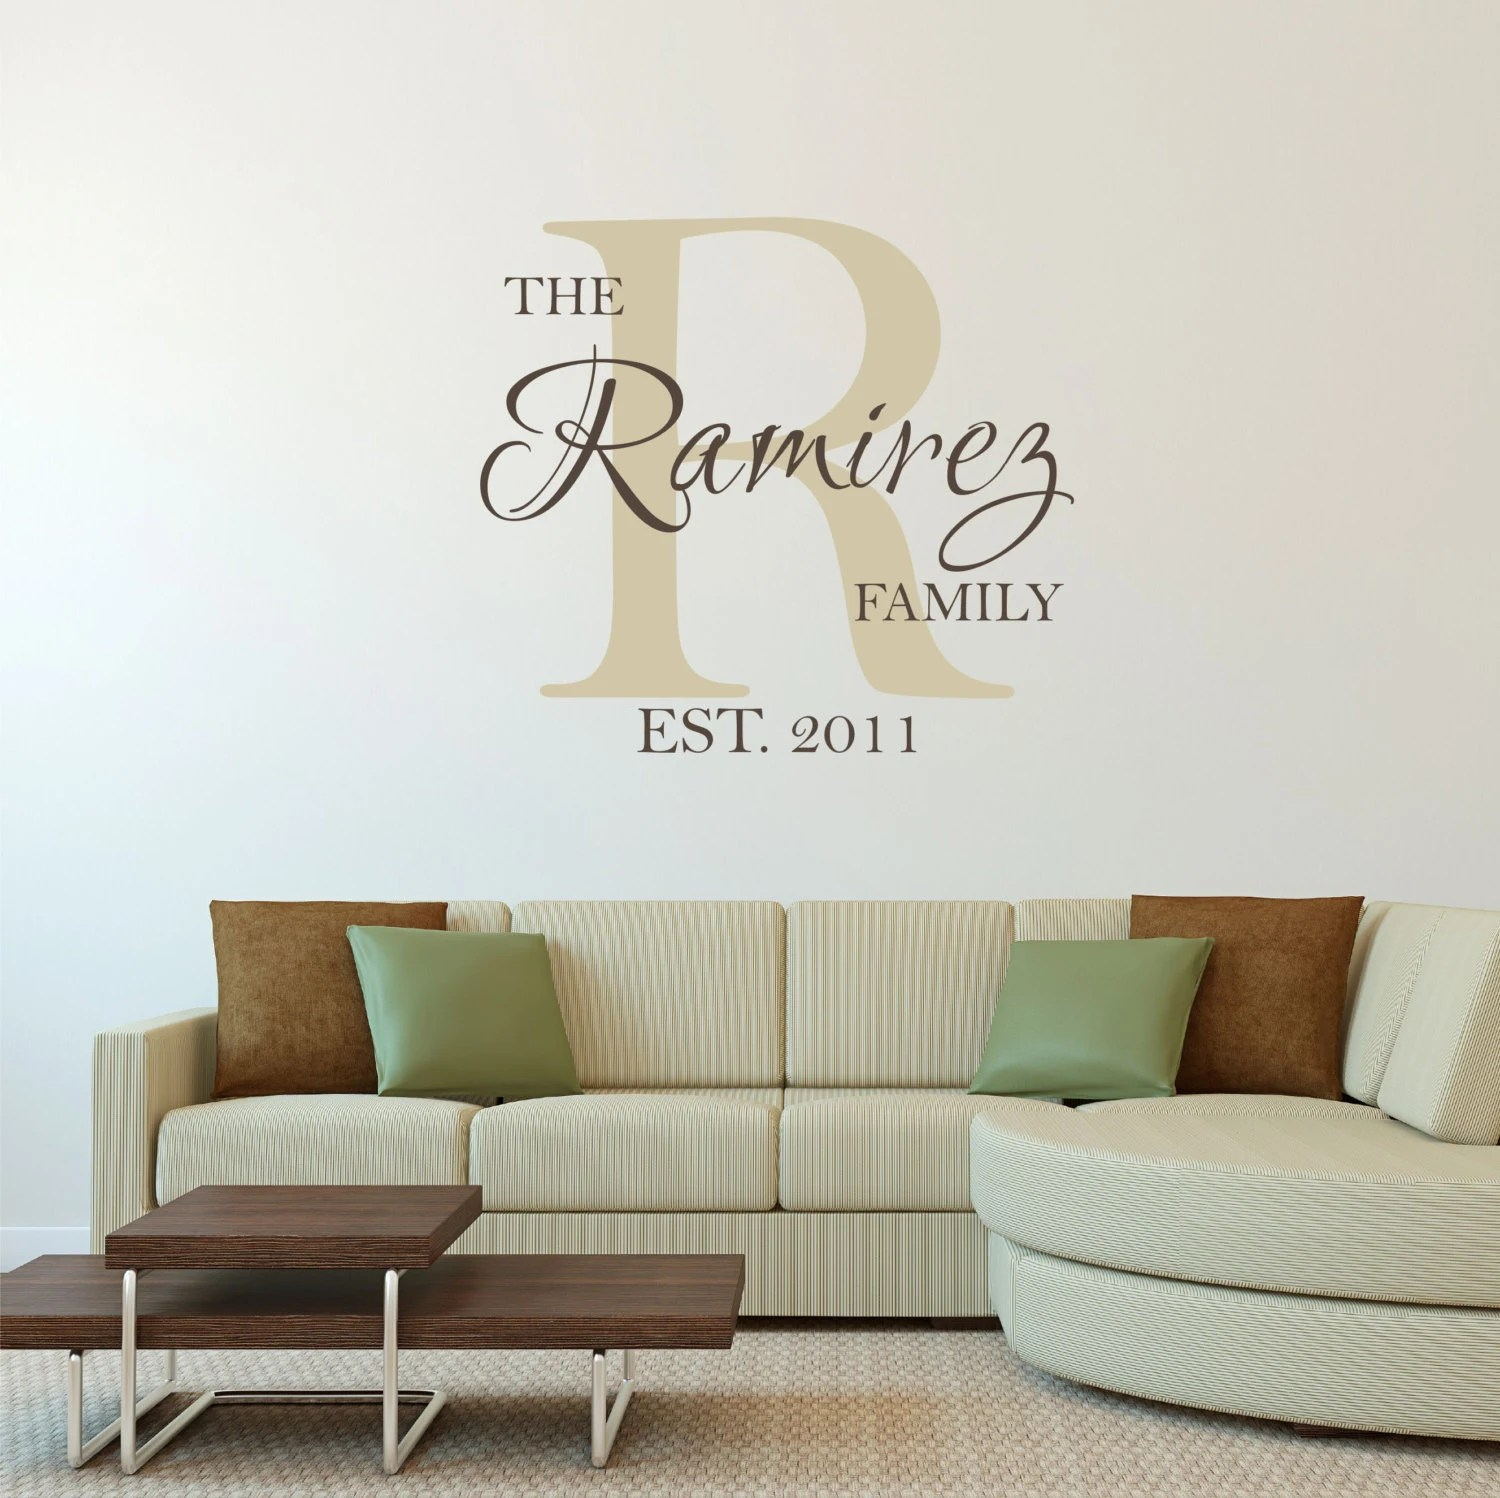 Personalized Family Name Wall Decal Sticker